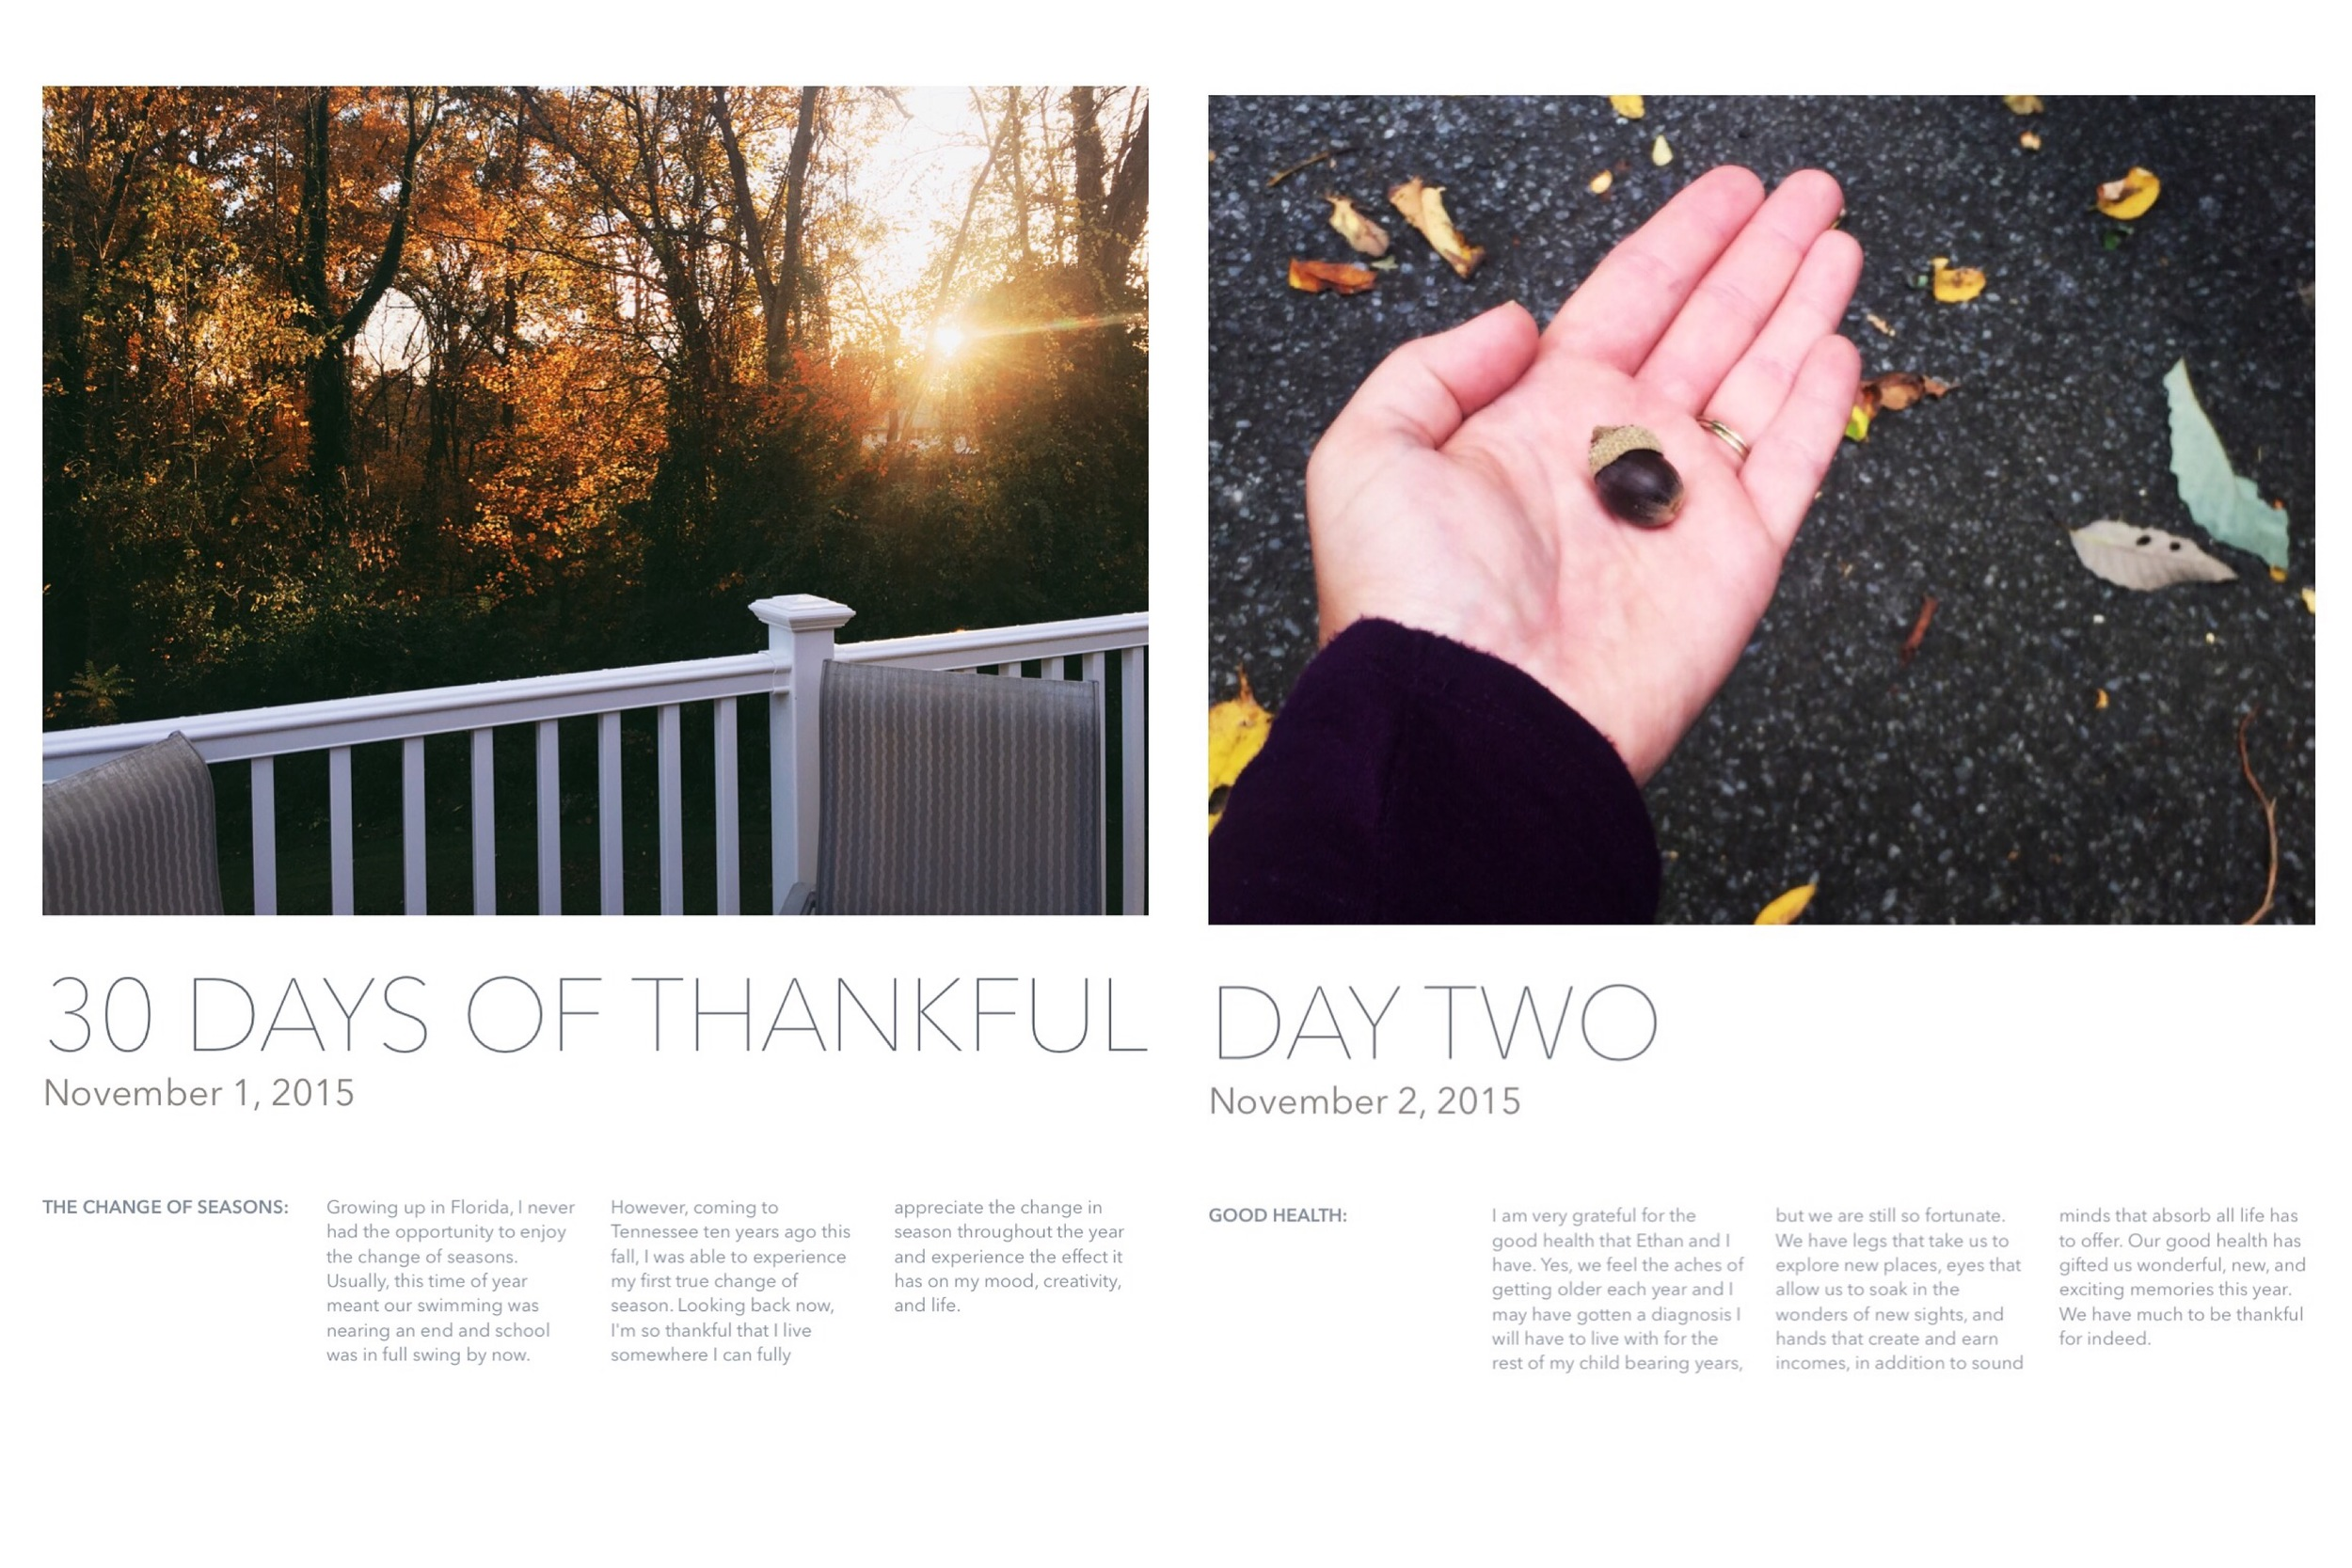 30 Days of Thankful Inspiration by Mandy of Turquoise Avenue - document a daily gratitude each day in November using an iPhone and the Apple Pages app!